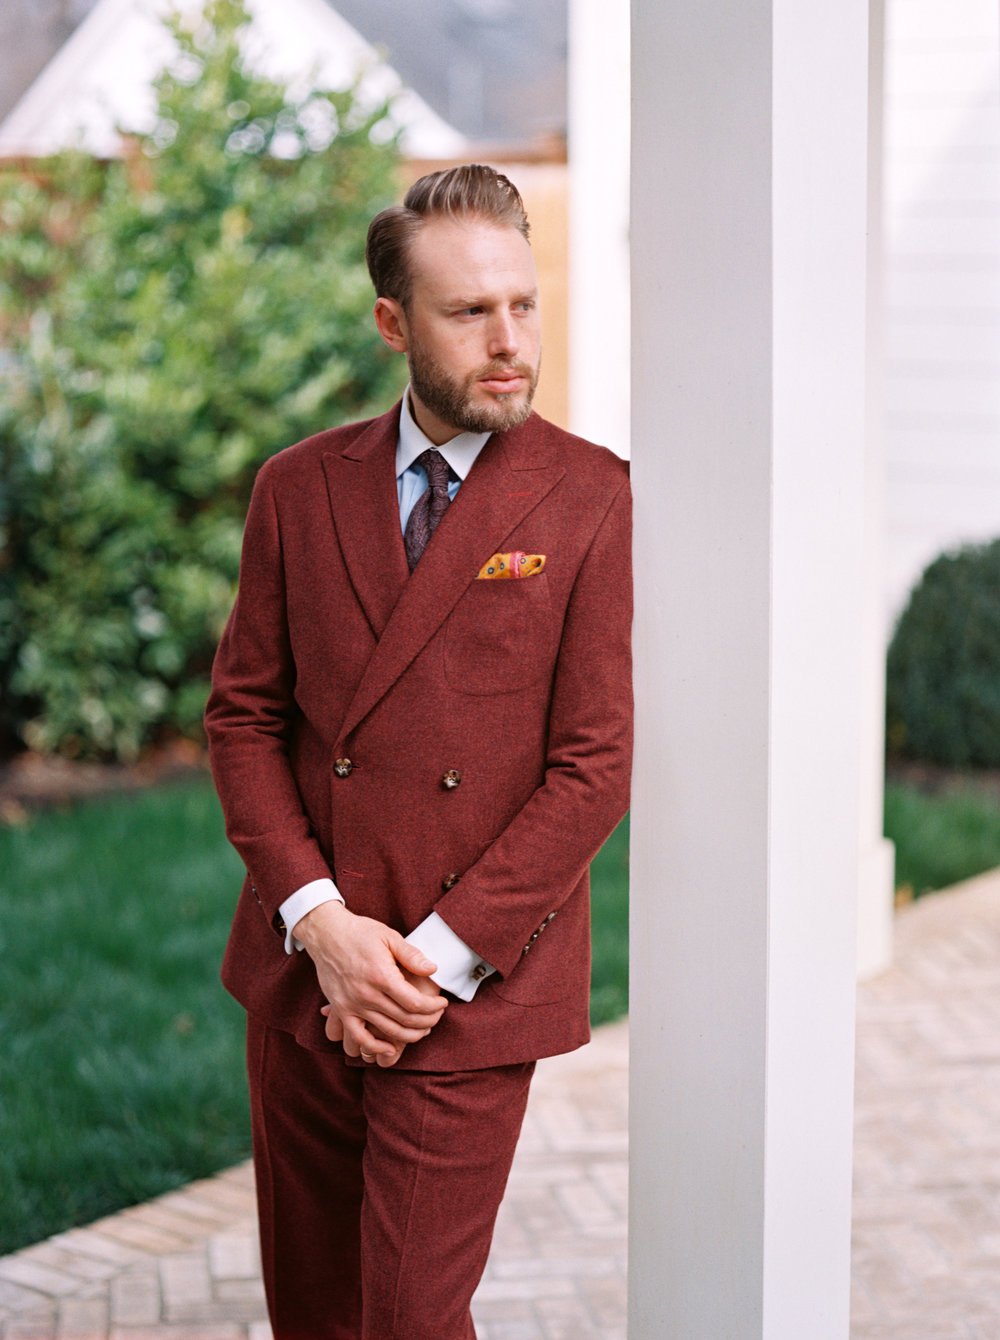 Bespoke suit in Burgundy at a white brick house in Nashville